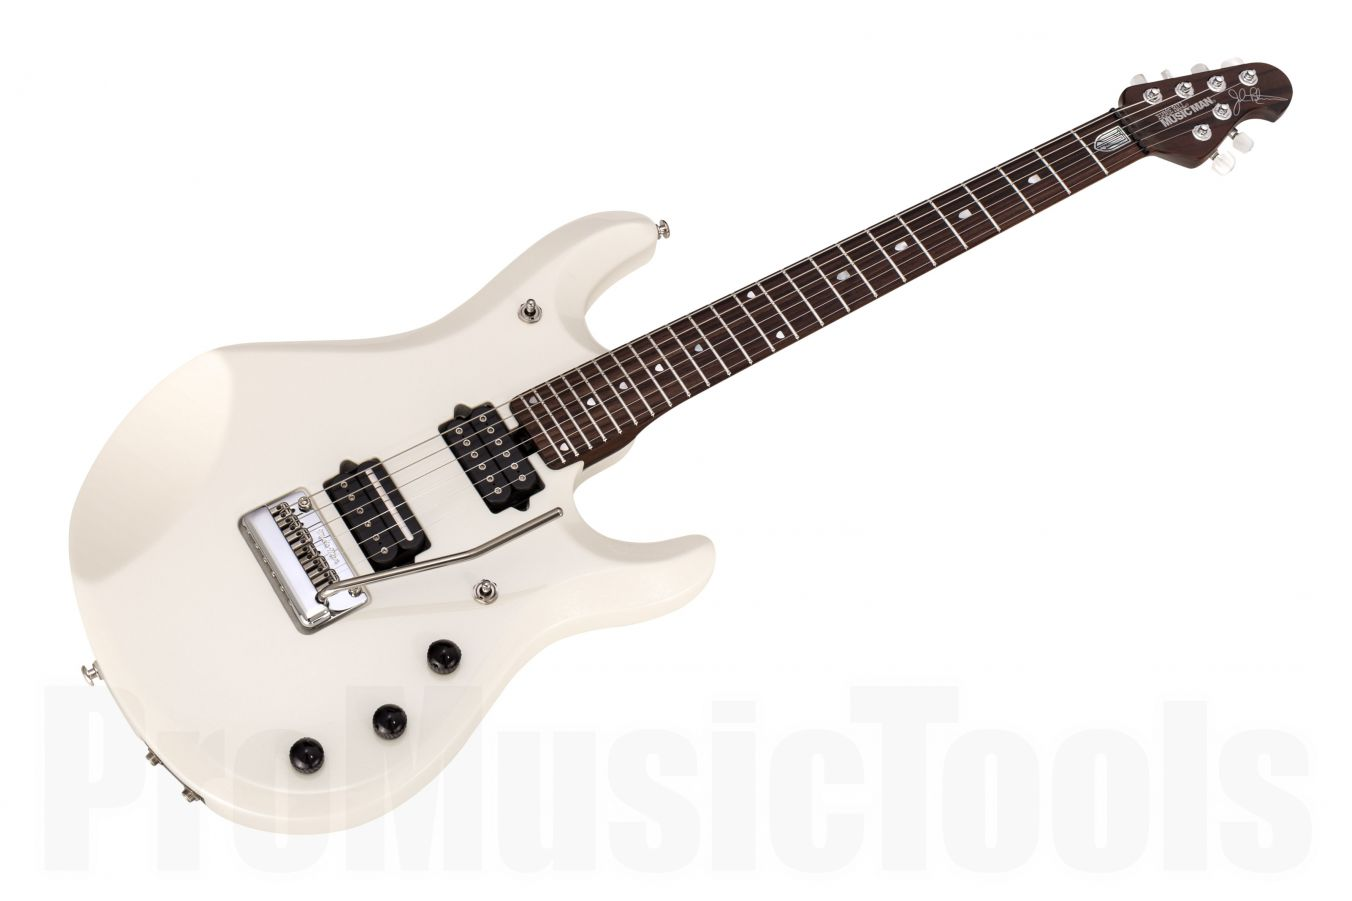 Music Man USA John Petrucci JP6 Piezo WP - White Pearl - JP Inlays - Rosewood Neck Limited Edition